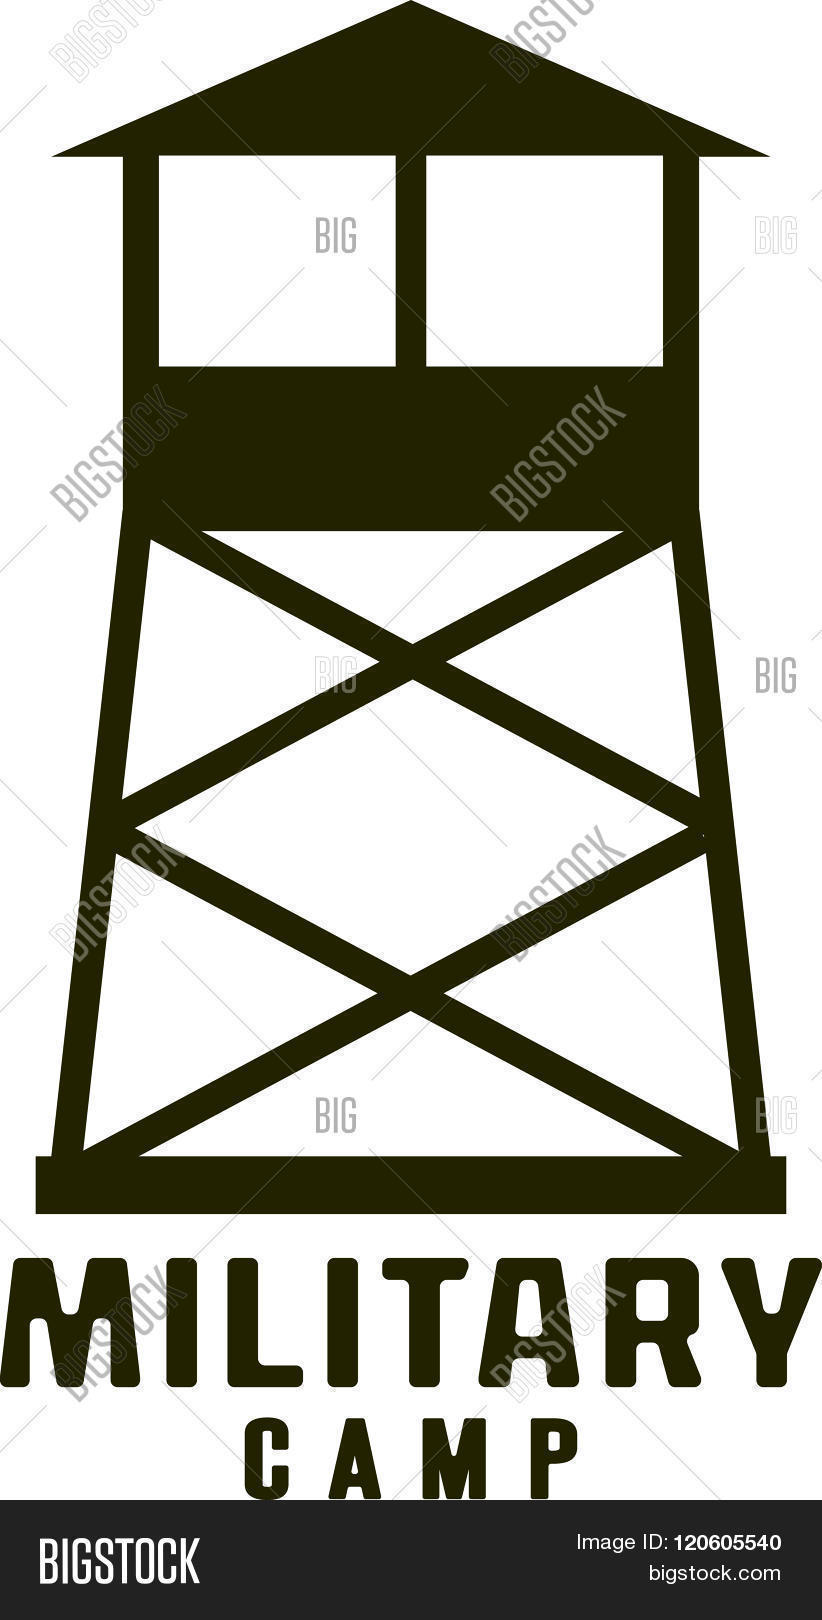 822x1620 Military Camp Clipart